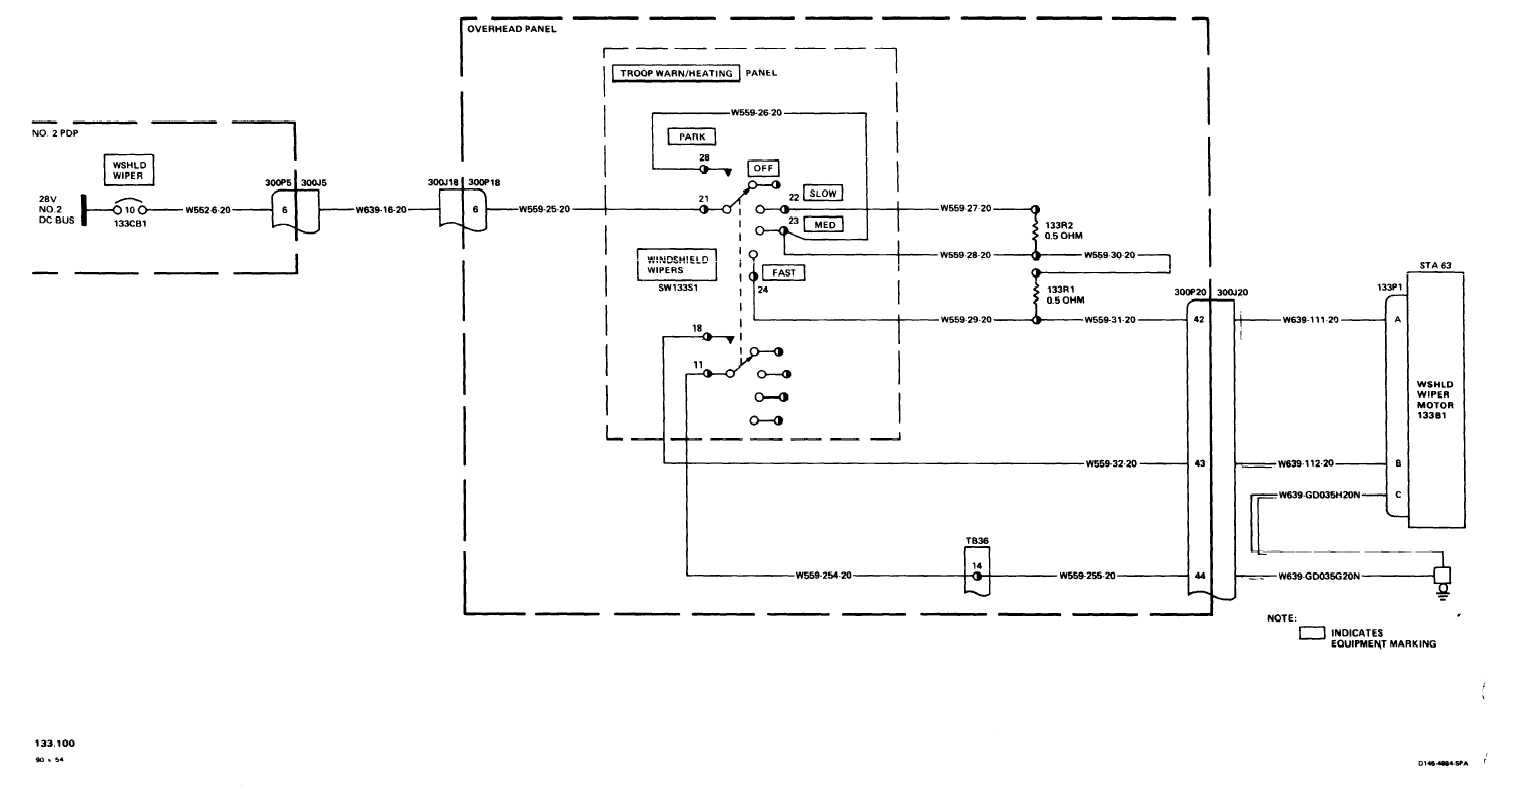 1964 chevy ignition switch wiring diagram